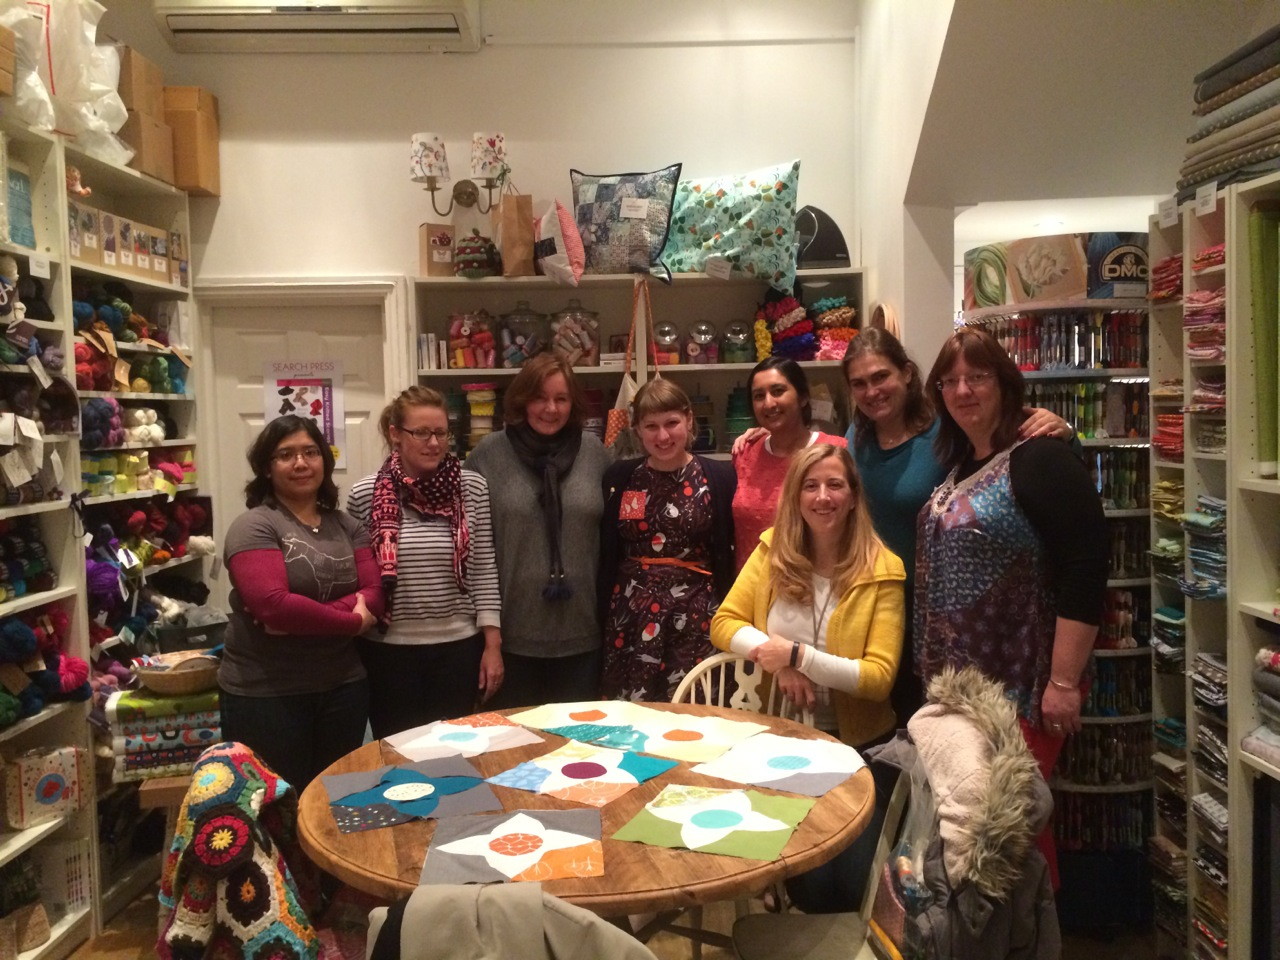 The afternoon session of Lizzy's Meadow Quilt class shows off their first blocks.